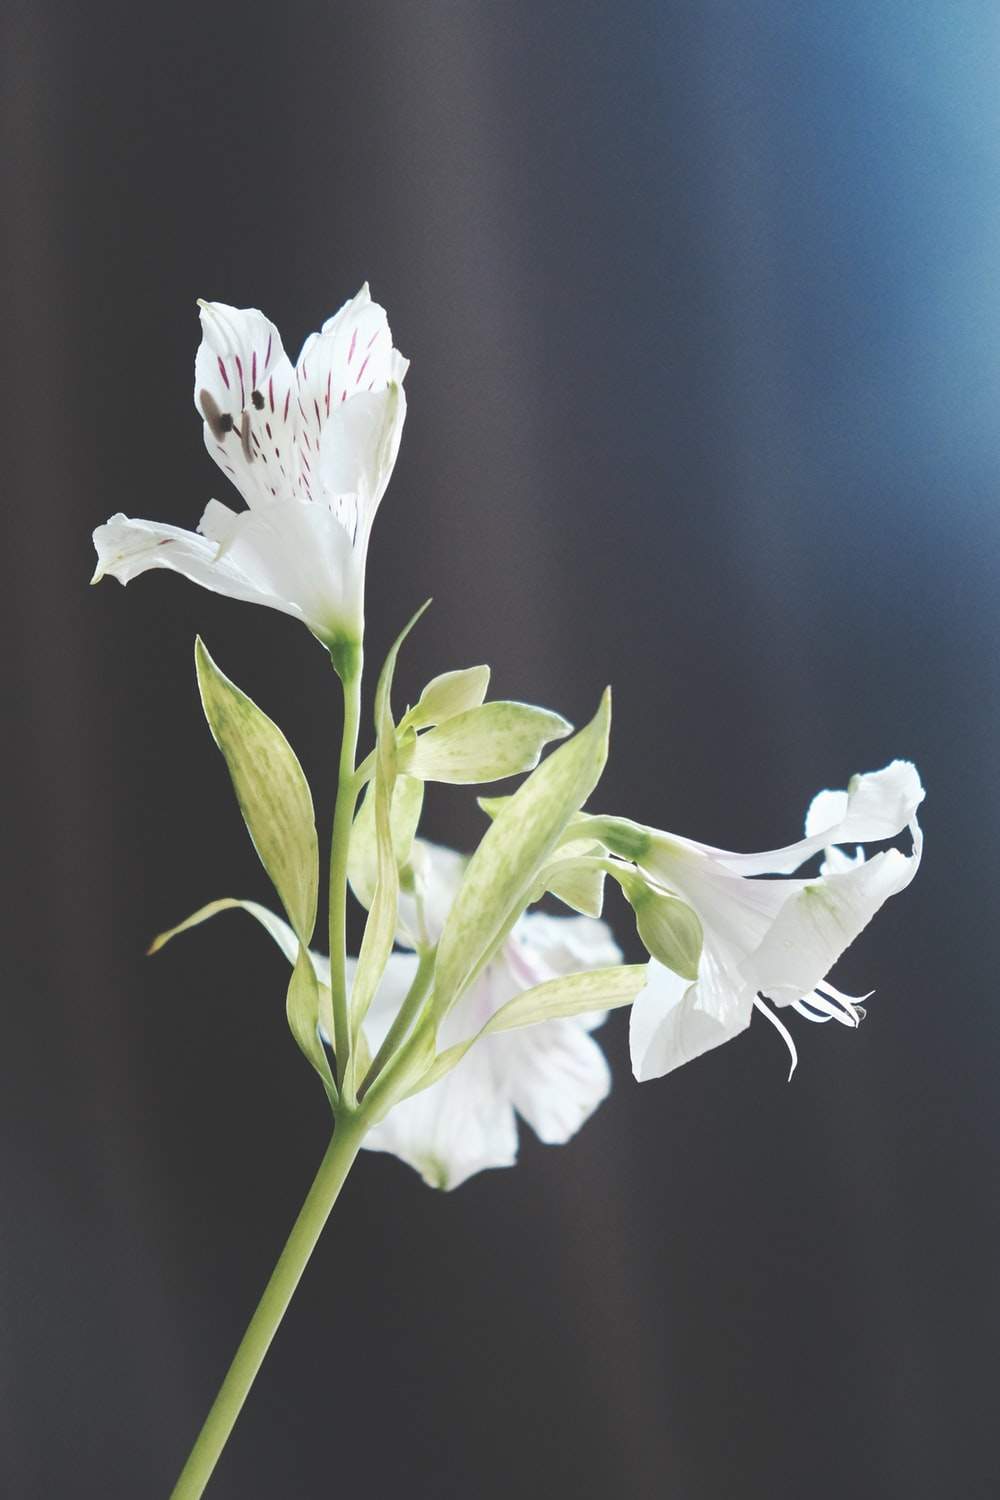 Flower White Light And Floral Hd Photo By Lex Sirikiat Pundalex